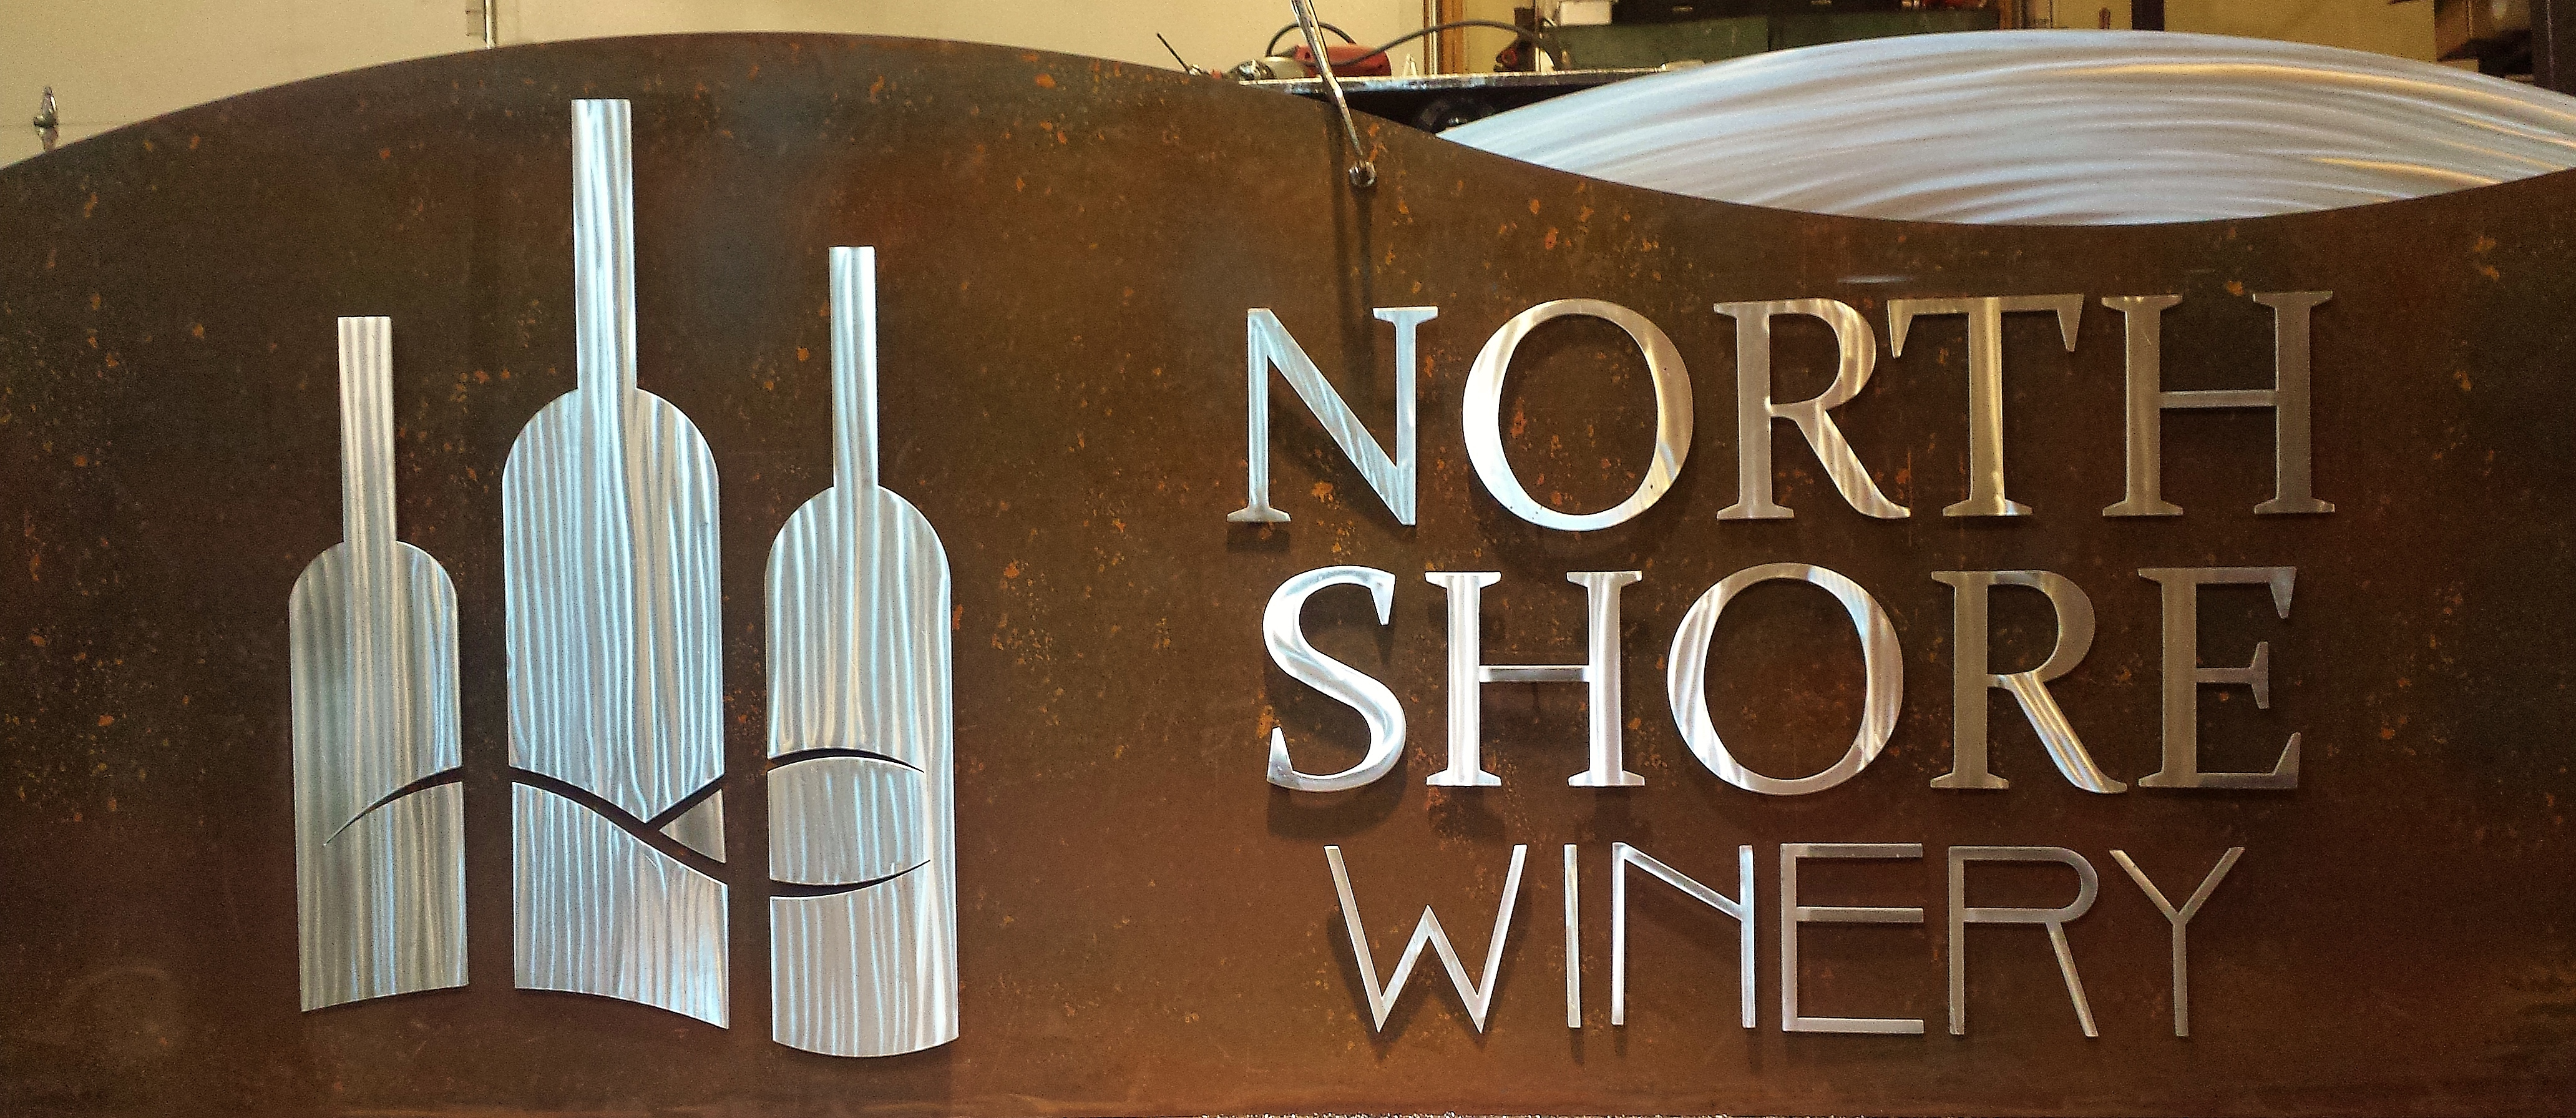 north-sore-winery-sign-1.jpg